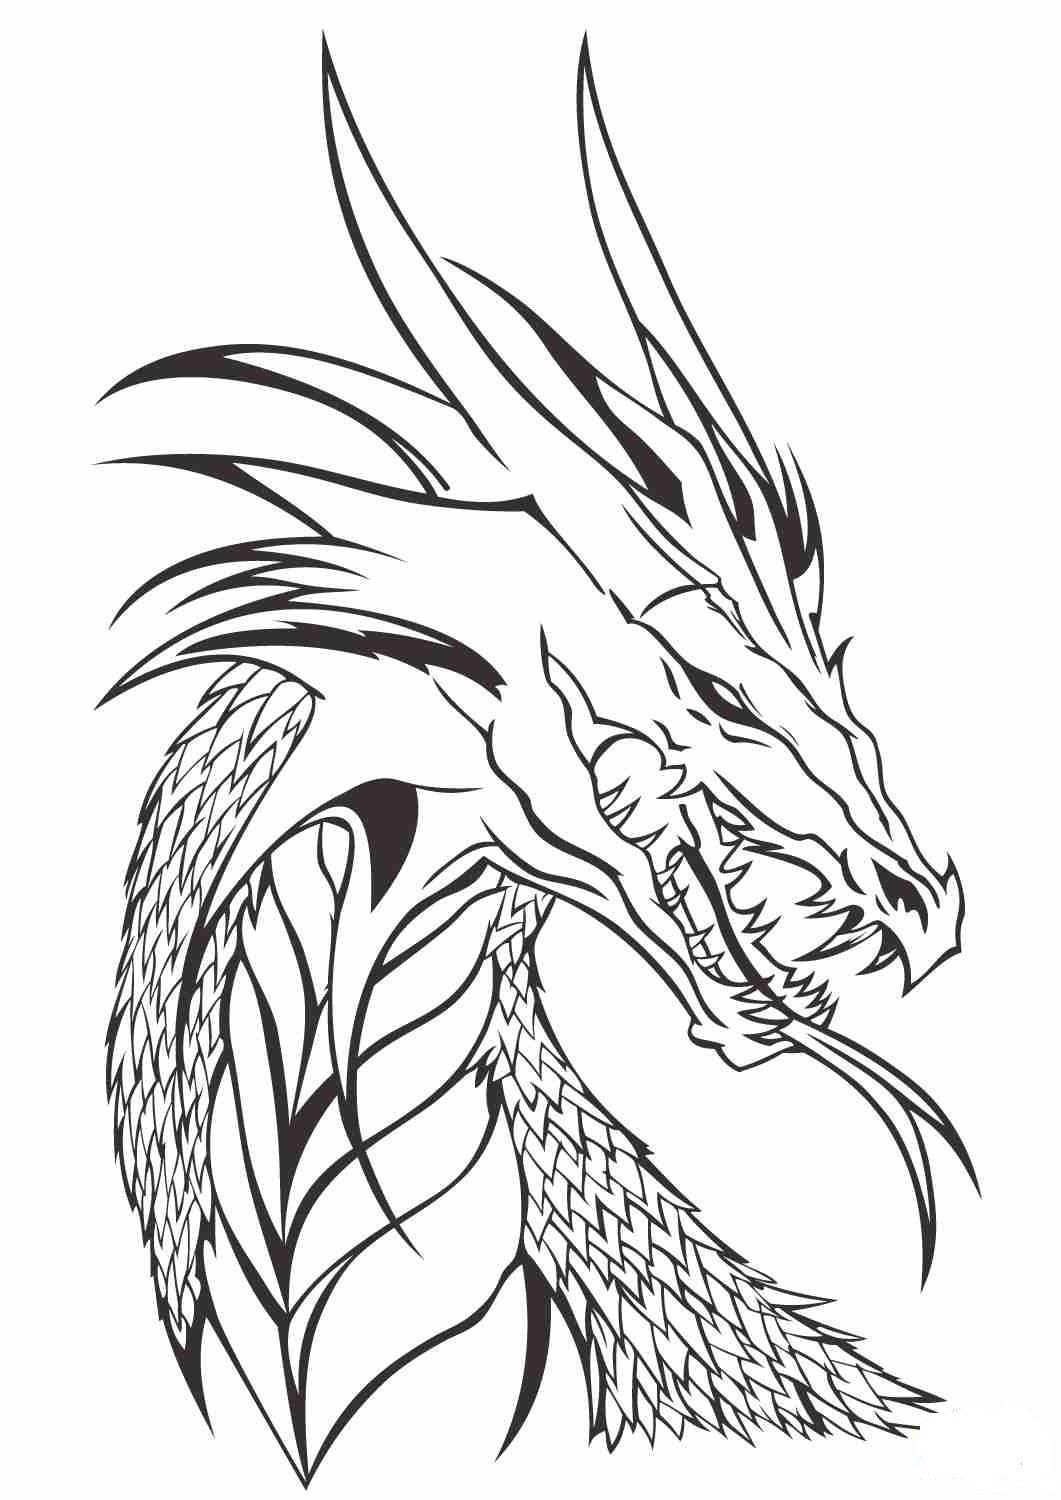 Dragon Coloring Pages For Adults Lovely Of Coloring Pages Dragons Realistic Realistic Dragon Dragon Coloring Page Dragon Pictures